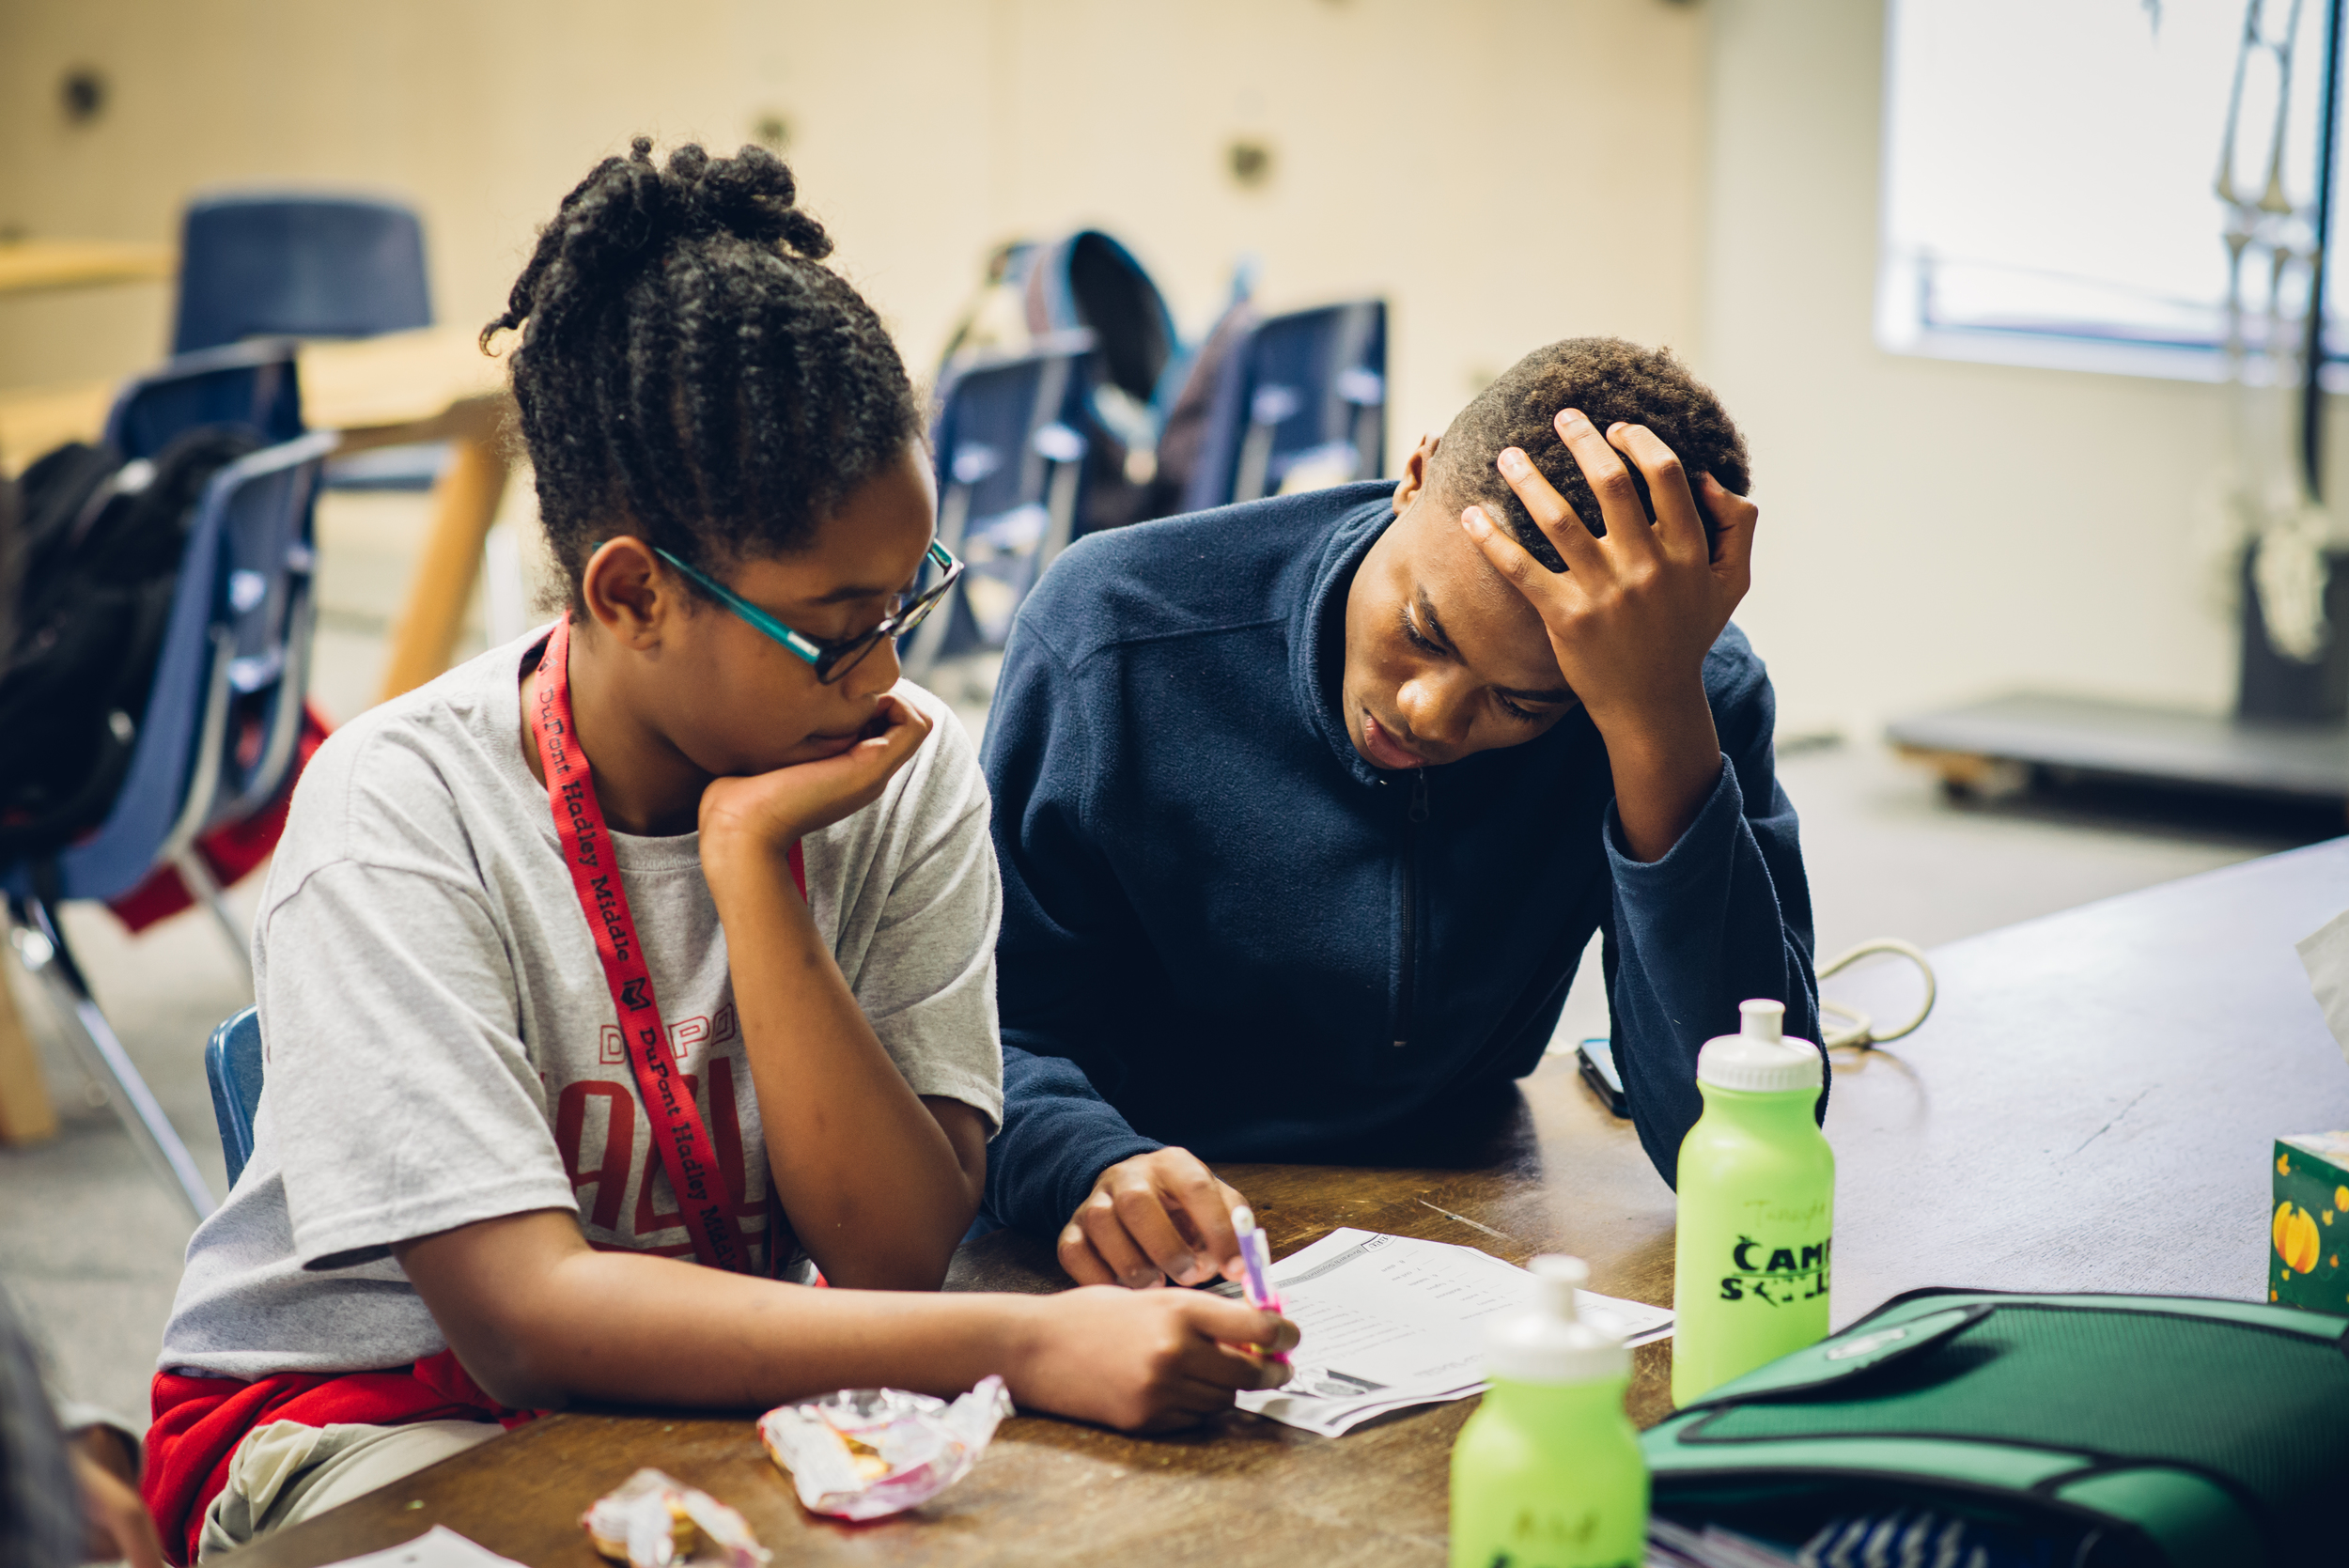 High school student, Gerron, helps Tanayia, 11, with her math homework. Gerron lives in the neighborhood and participated in Camp Skillz last summer. After learning about CASE, he asked if he could volunteer twice a week as a tutor.